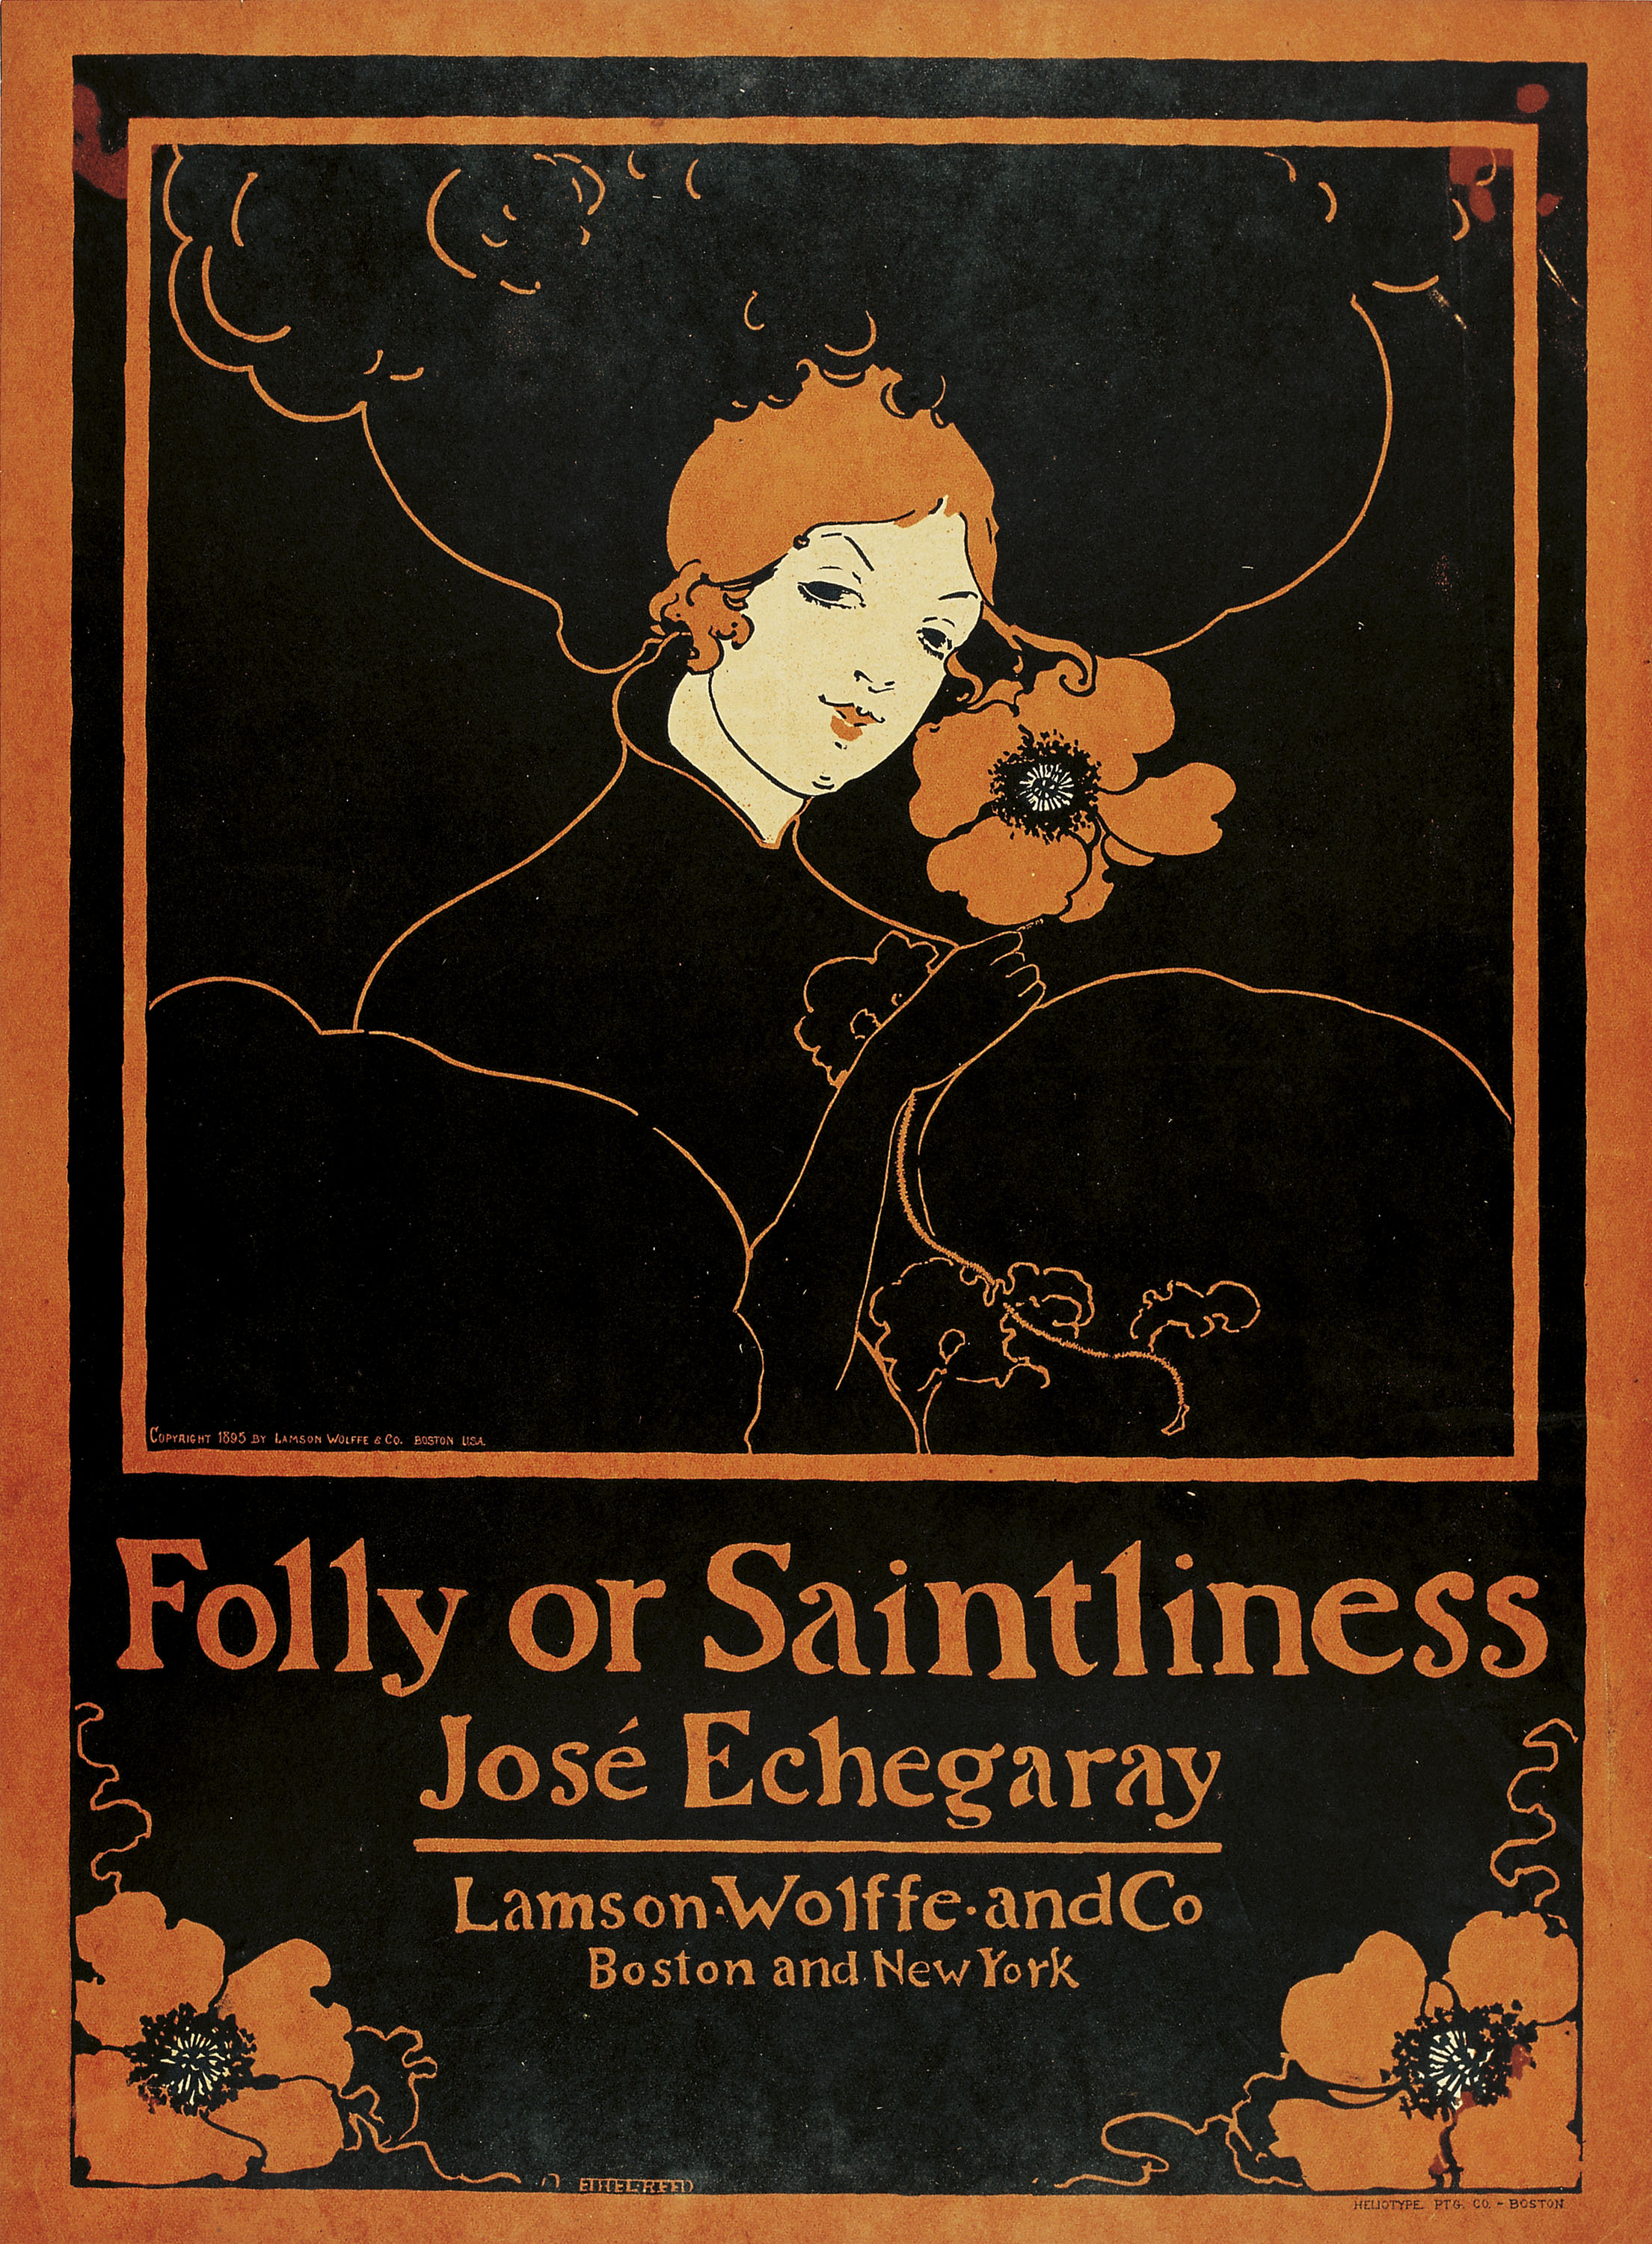 Folly or Saintliness, Ethel Reed, 1895